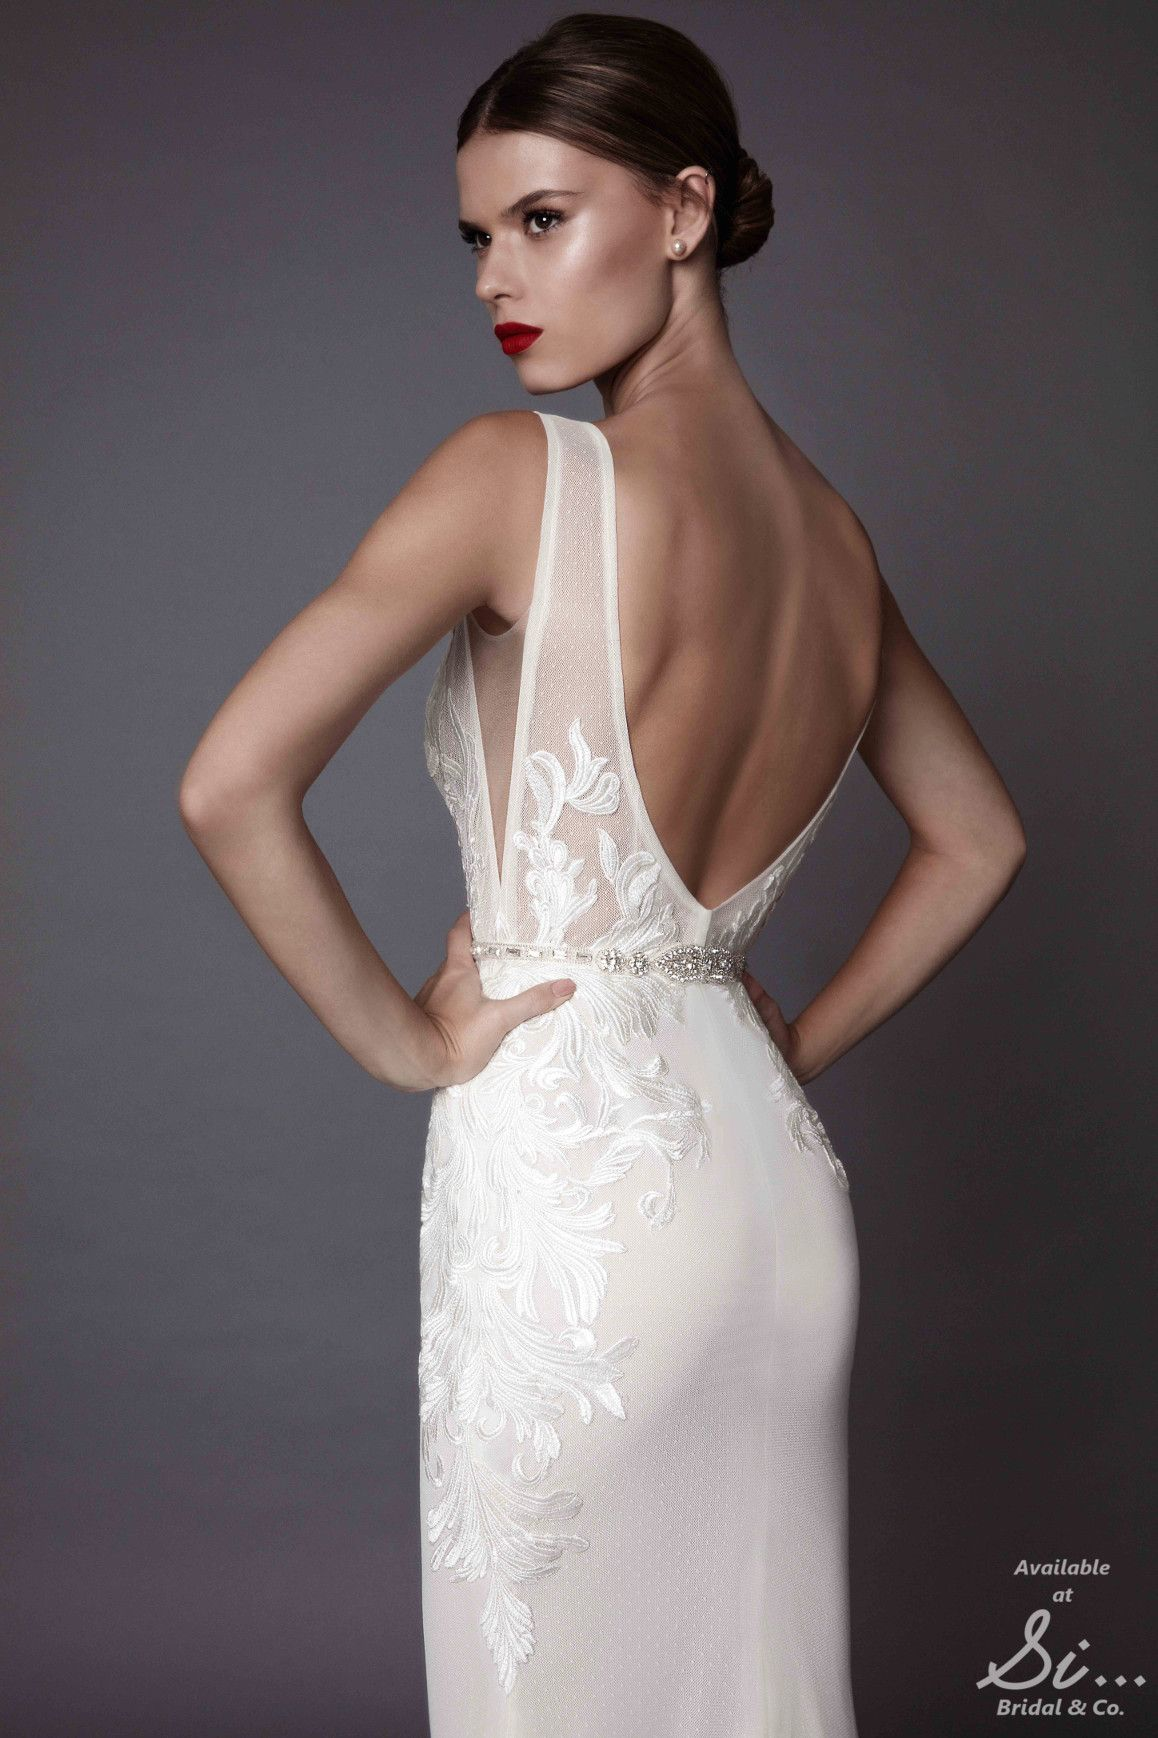 Name brand wedding dresses  Amadis  Muse by BERTA  Brand new luxury diffusion line by the